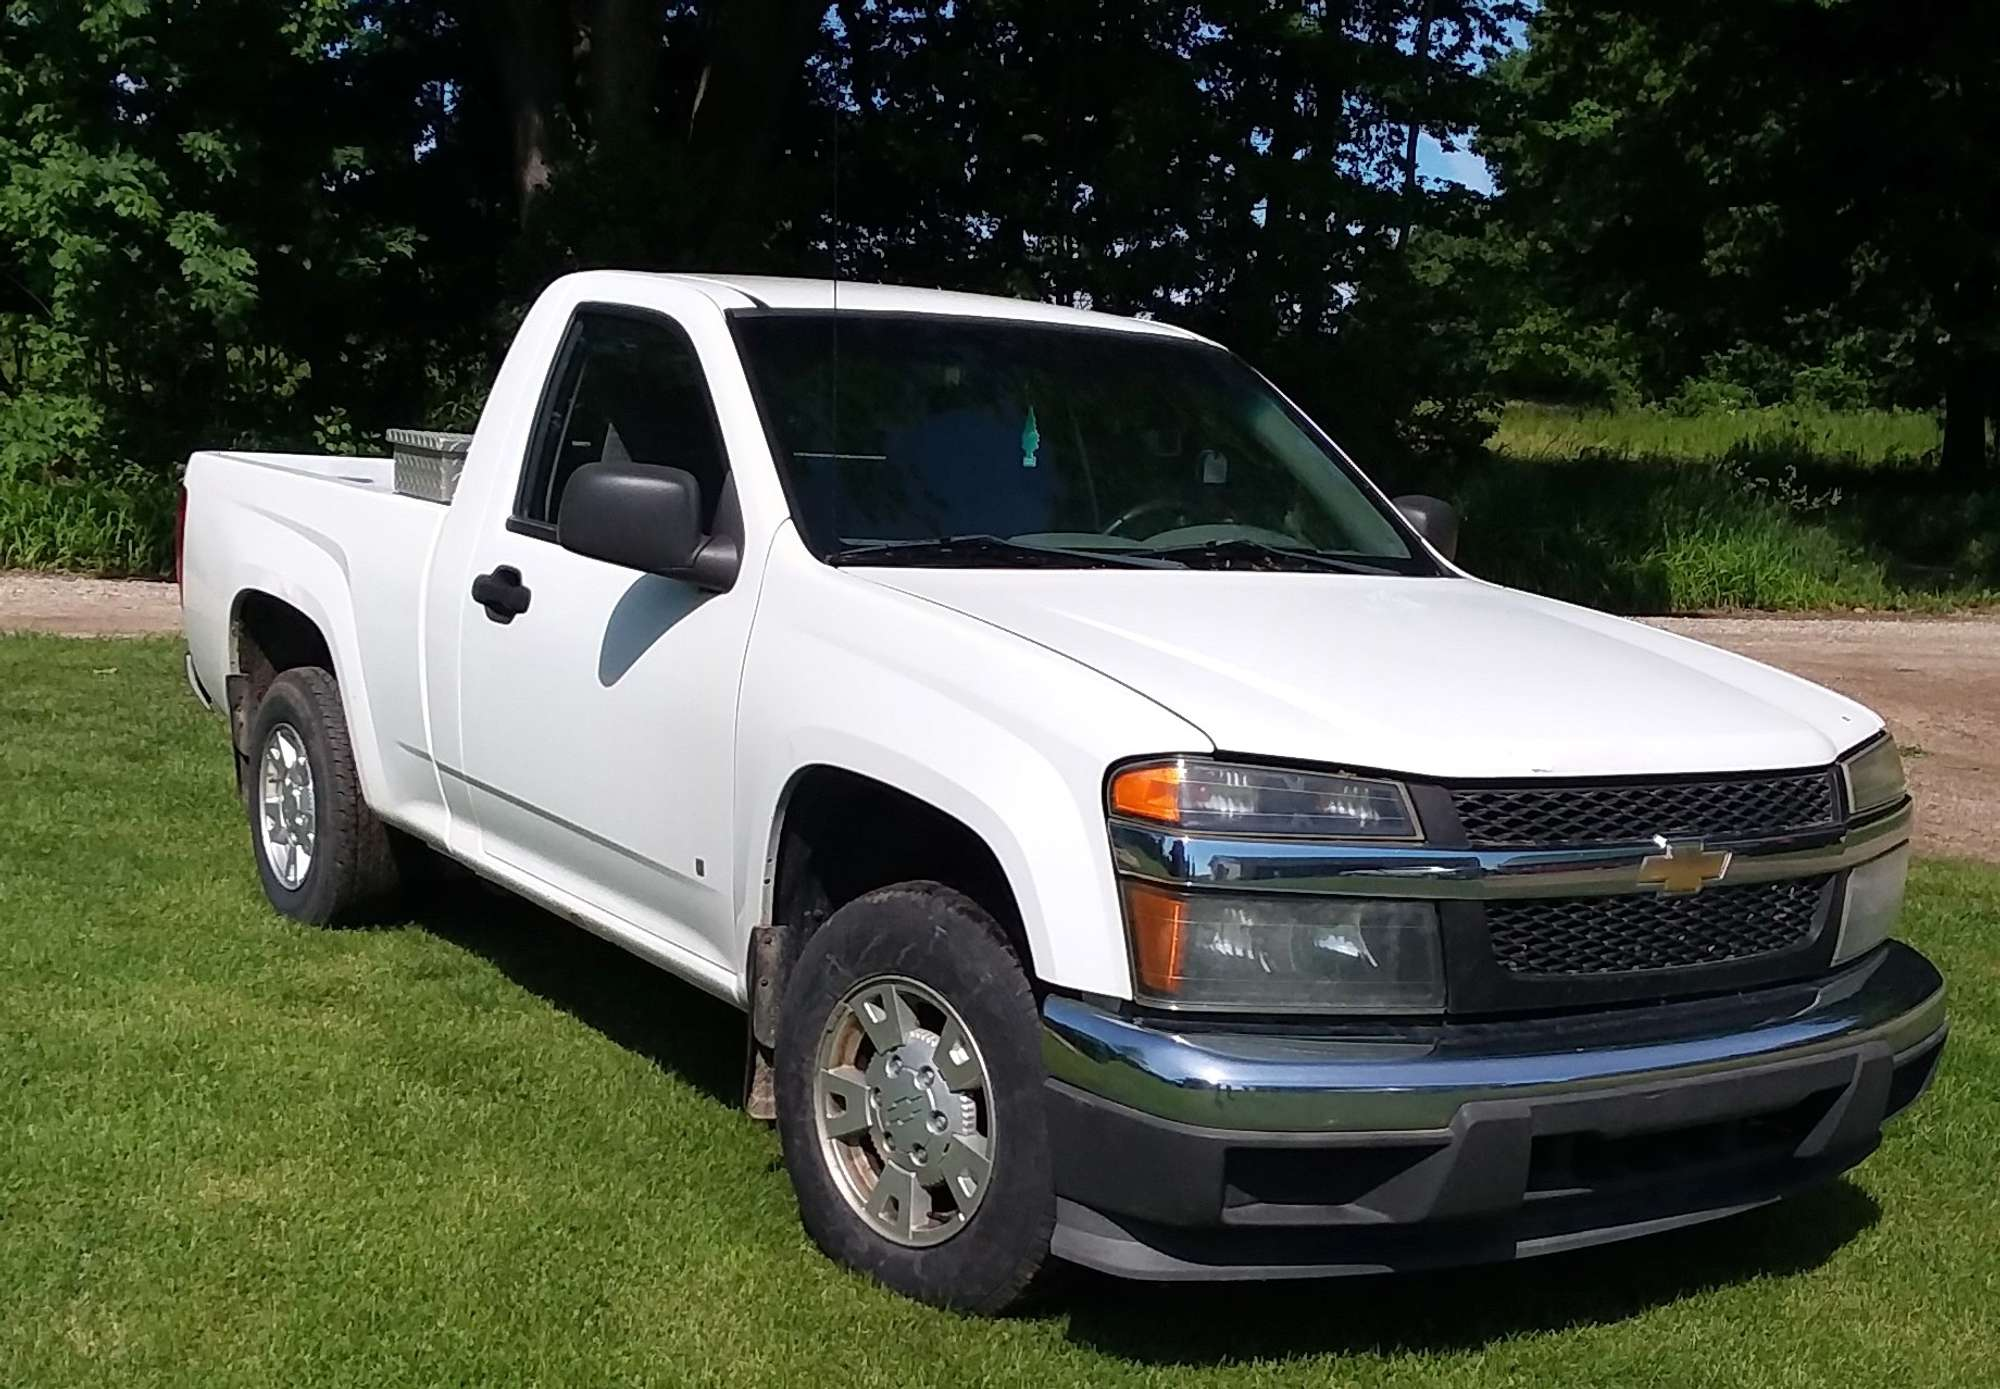 2007 colorado chevy battery pickup albrecht clear title